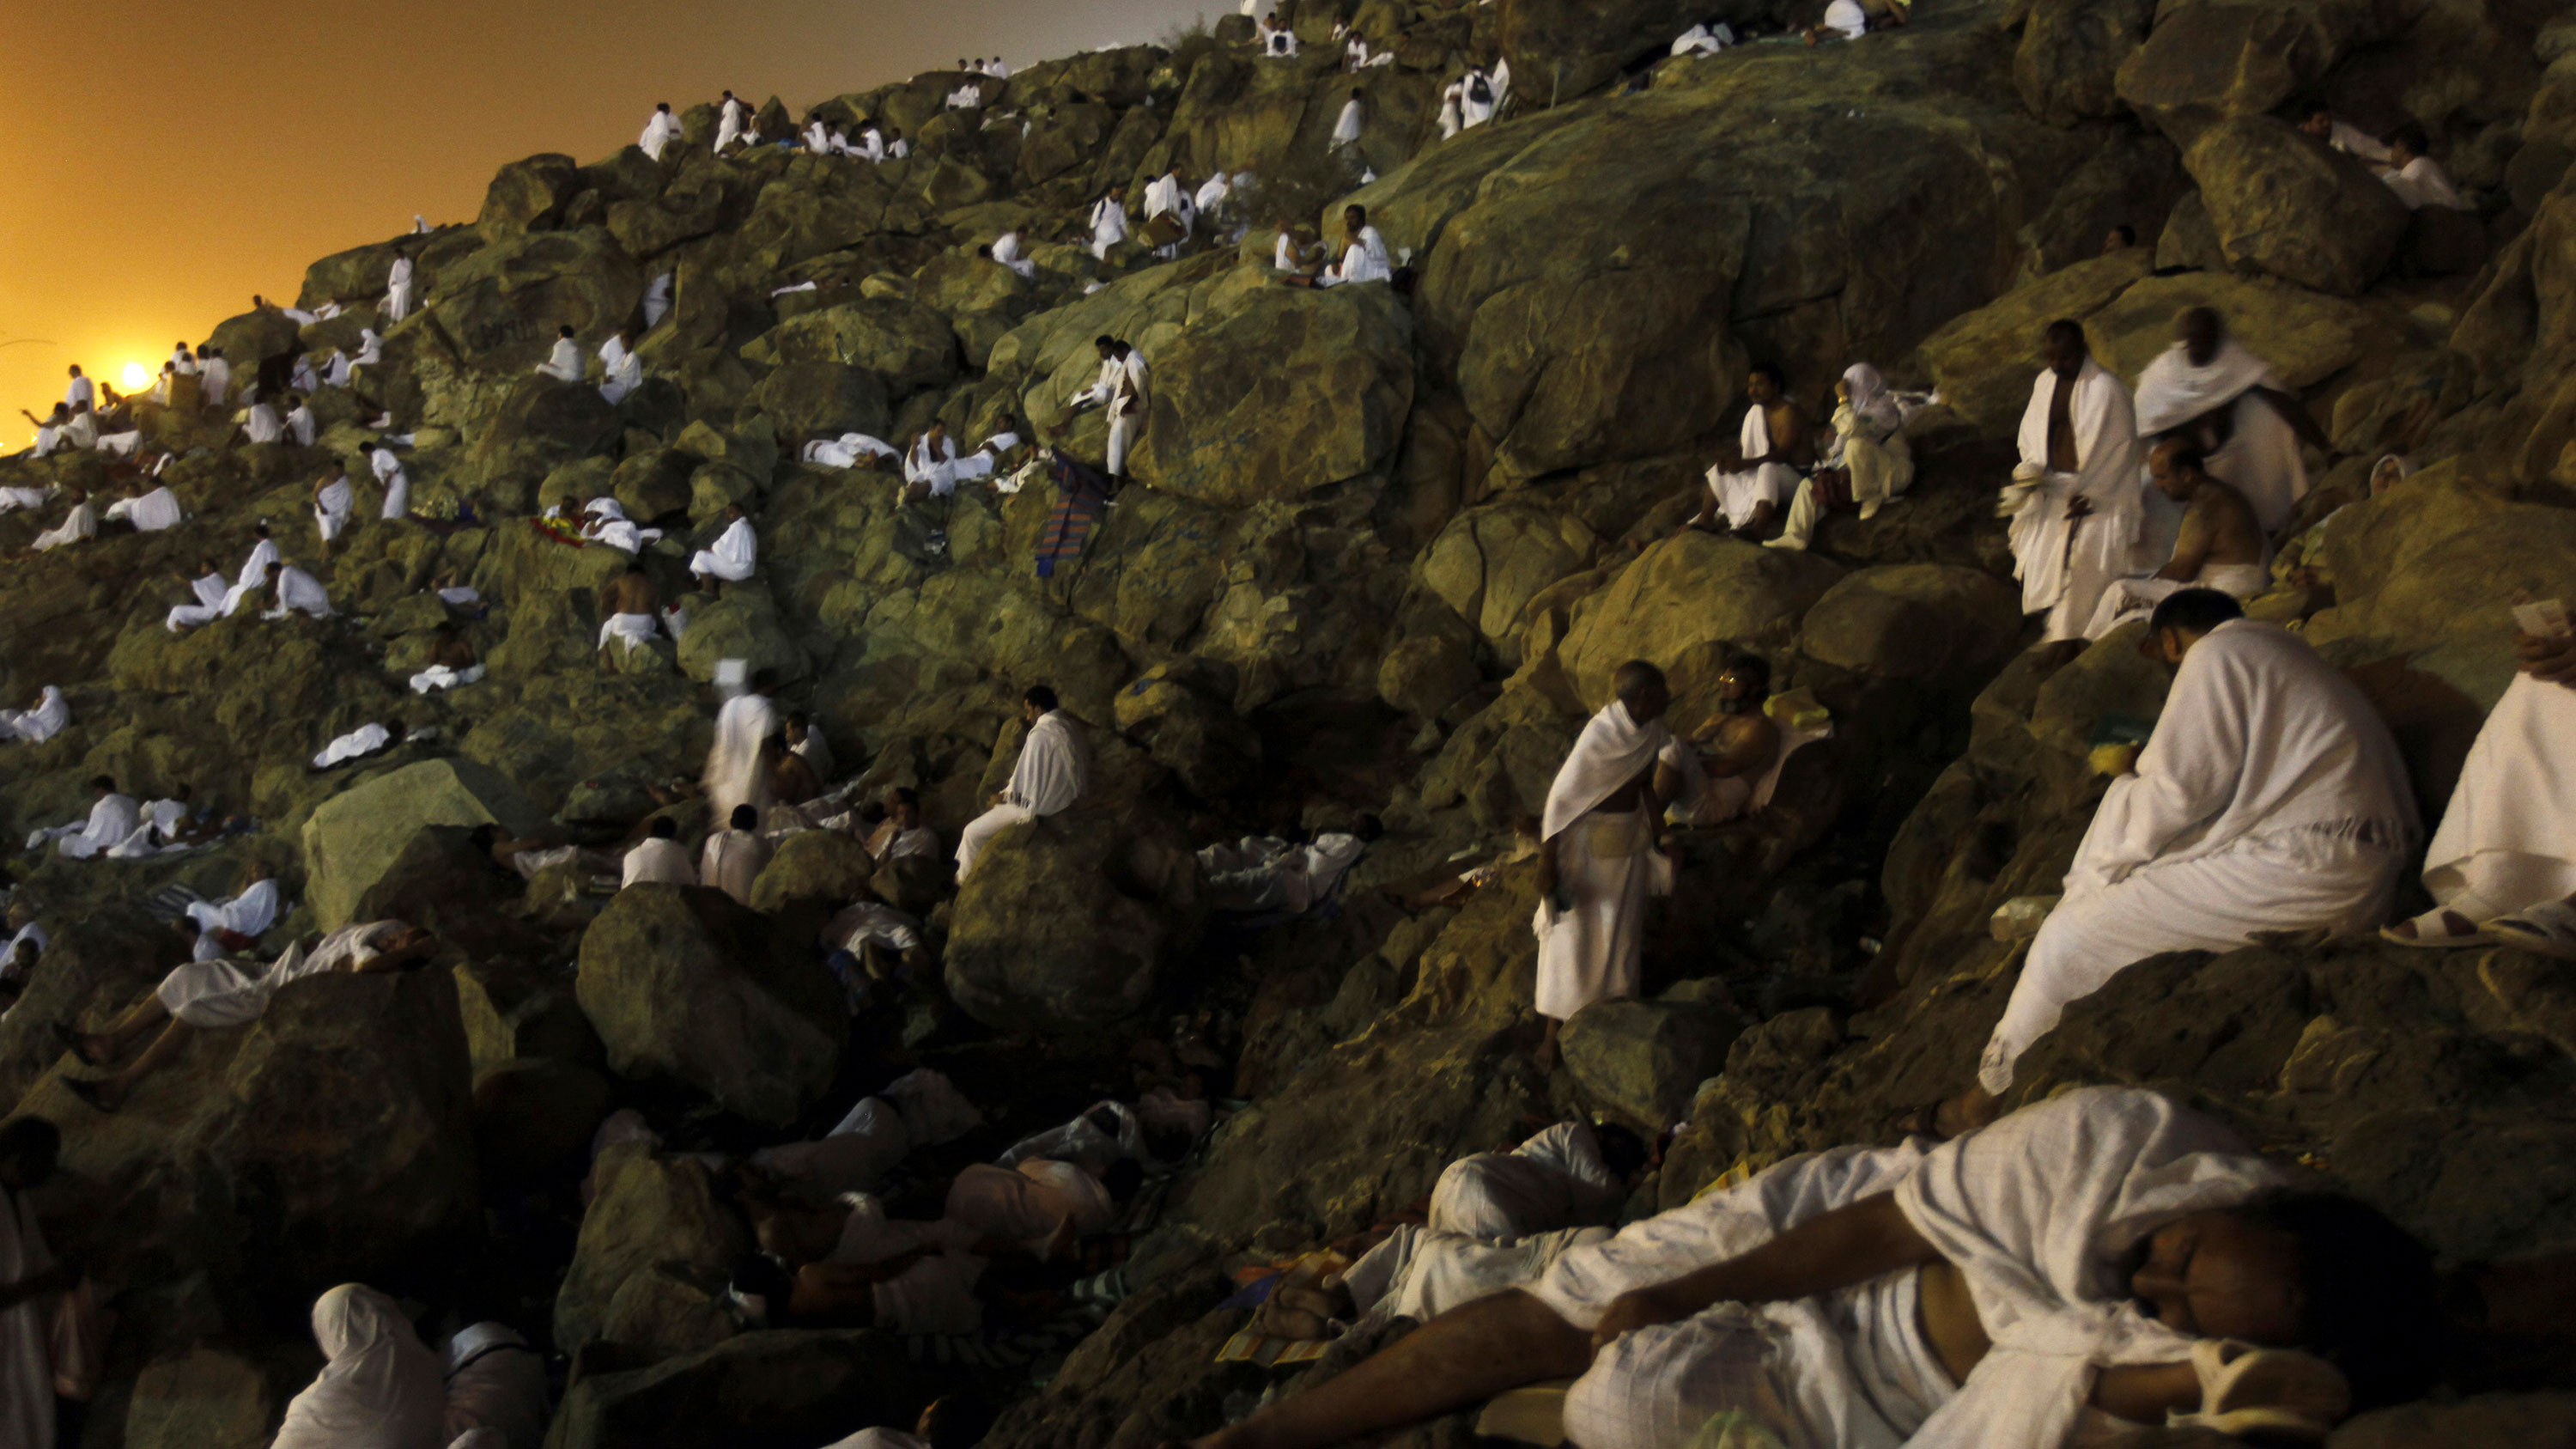 The photo is stunning. Dawn is breaking over the mountain, and hundreds of pilgrims wearing simple white robes are resting on the rocks in twos and threes.